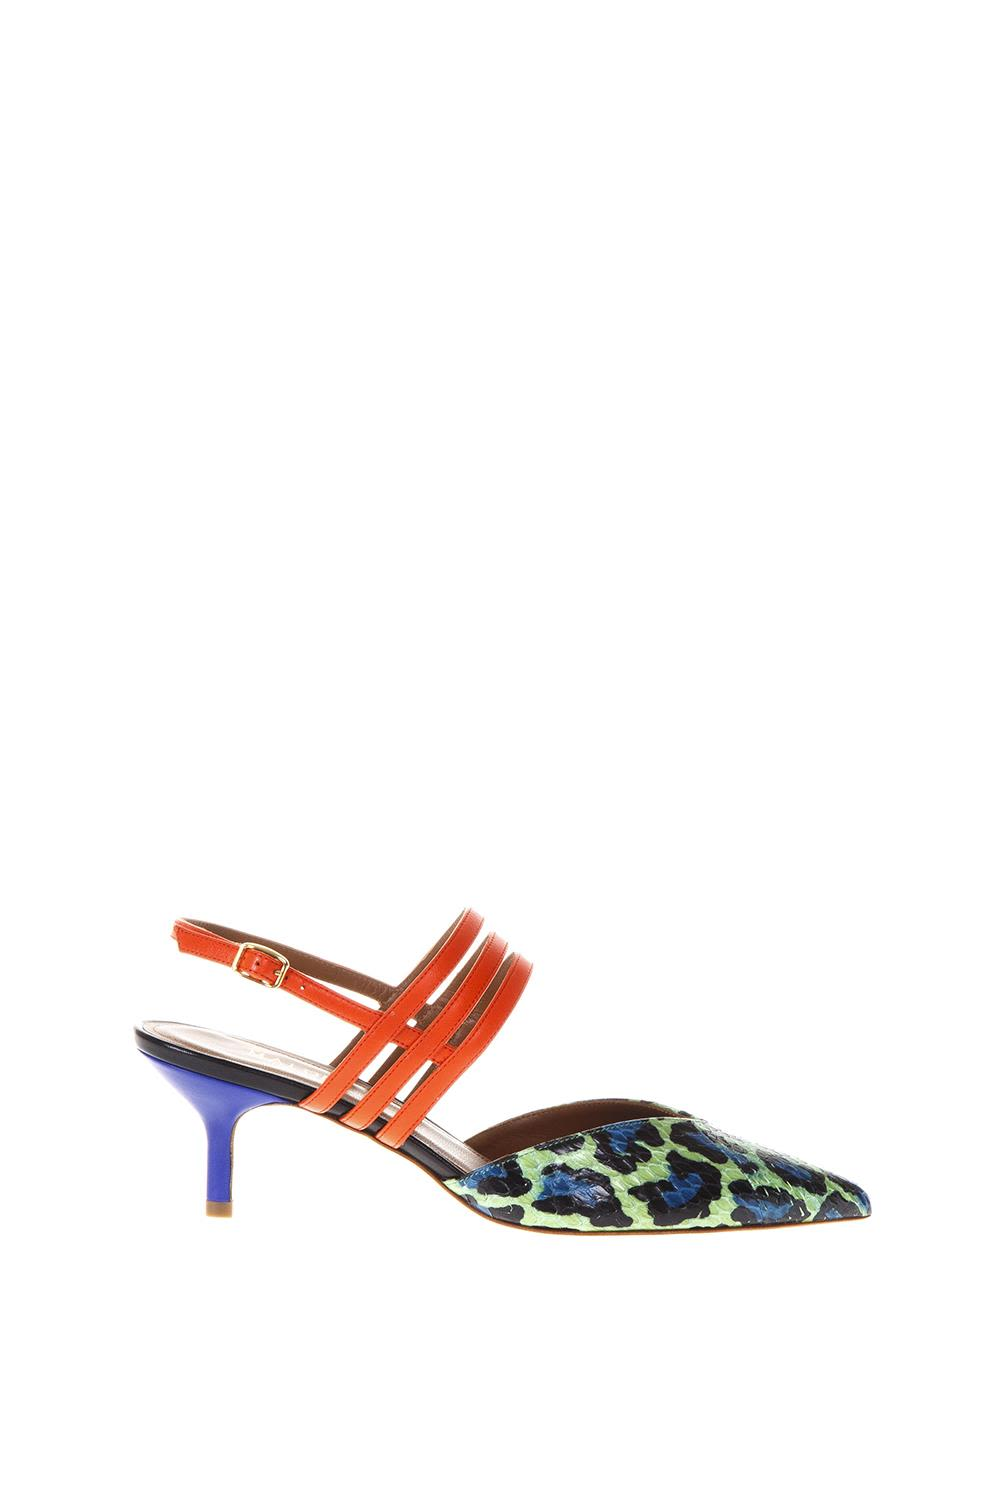 Malone Souliers Liza 1 Multicolor Sandals In Leather